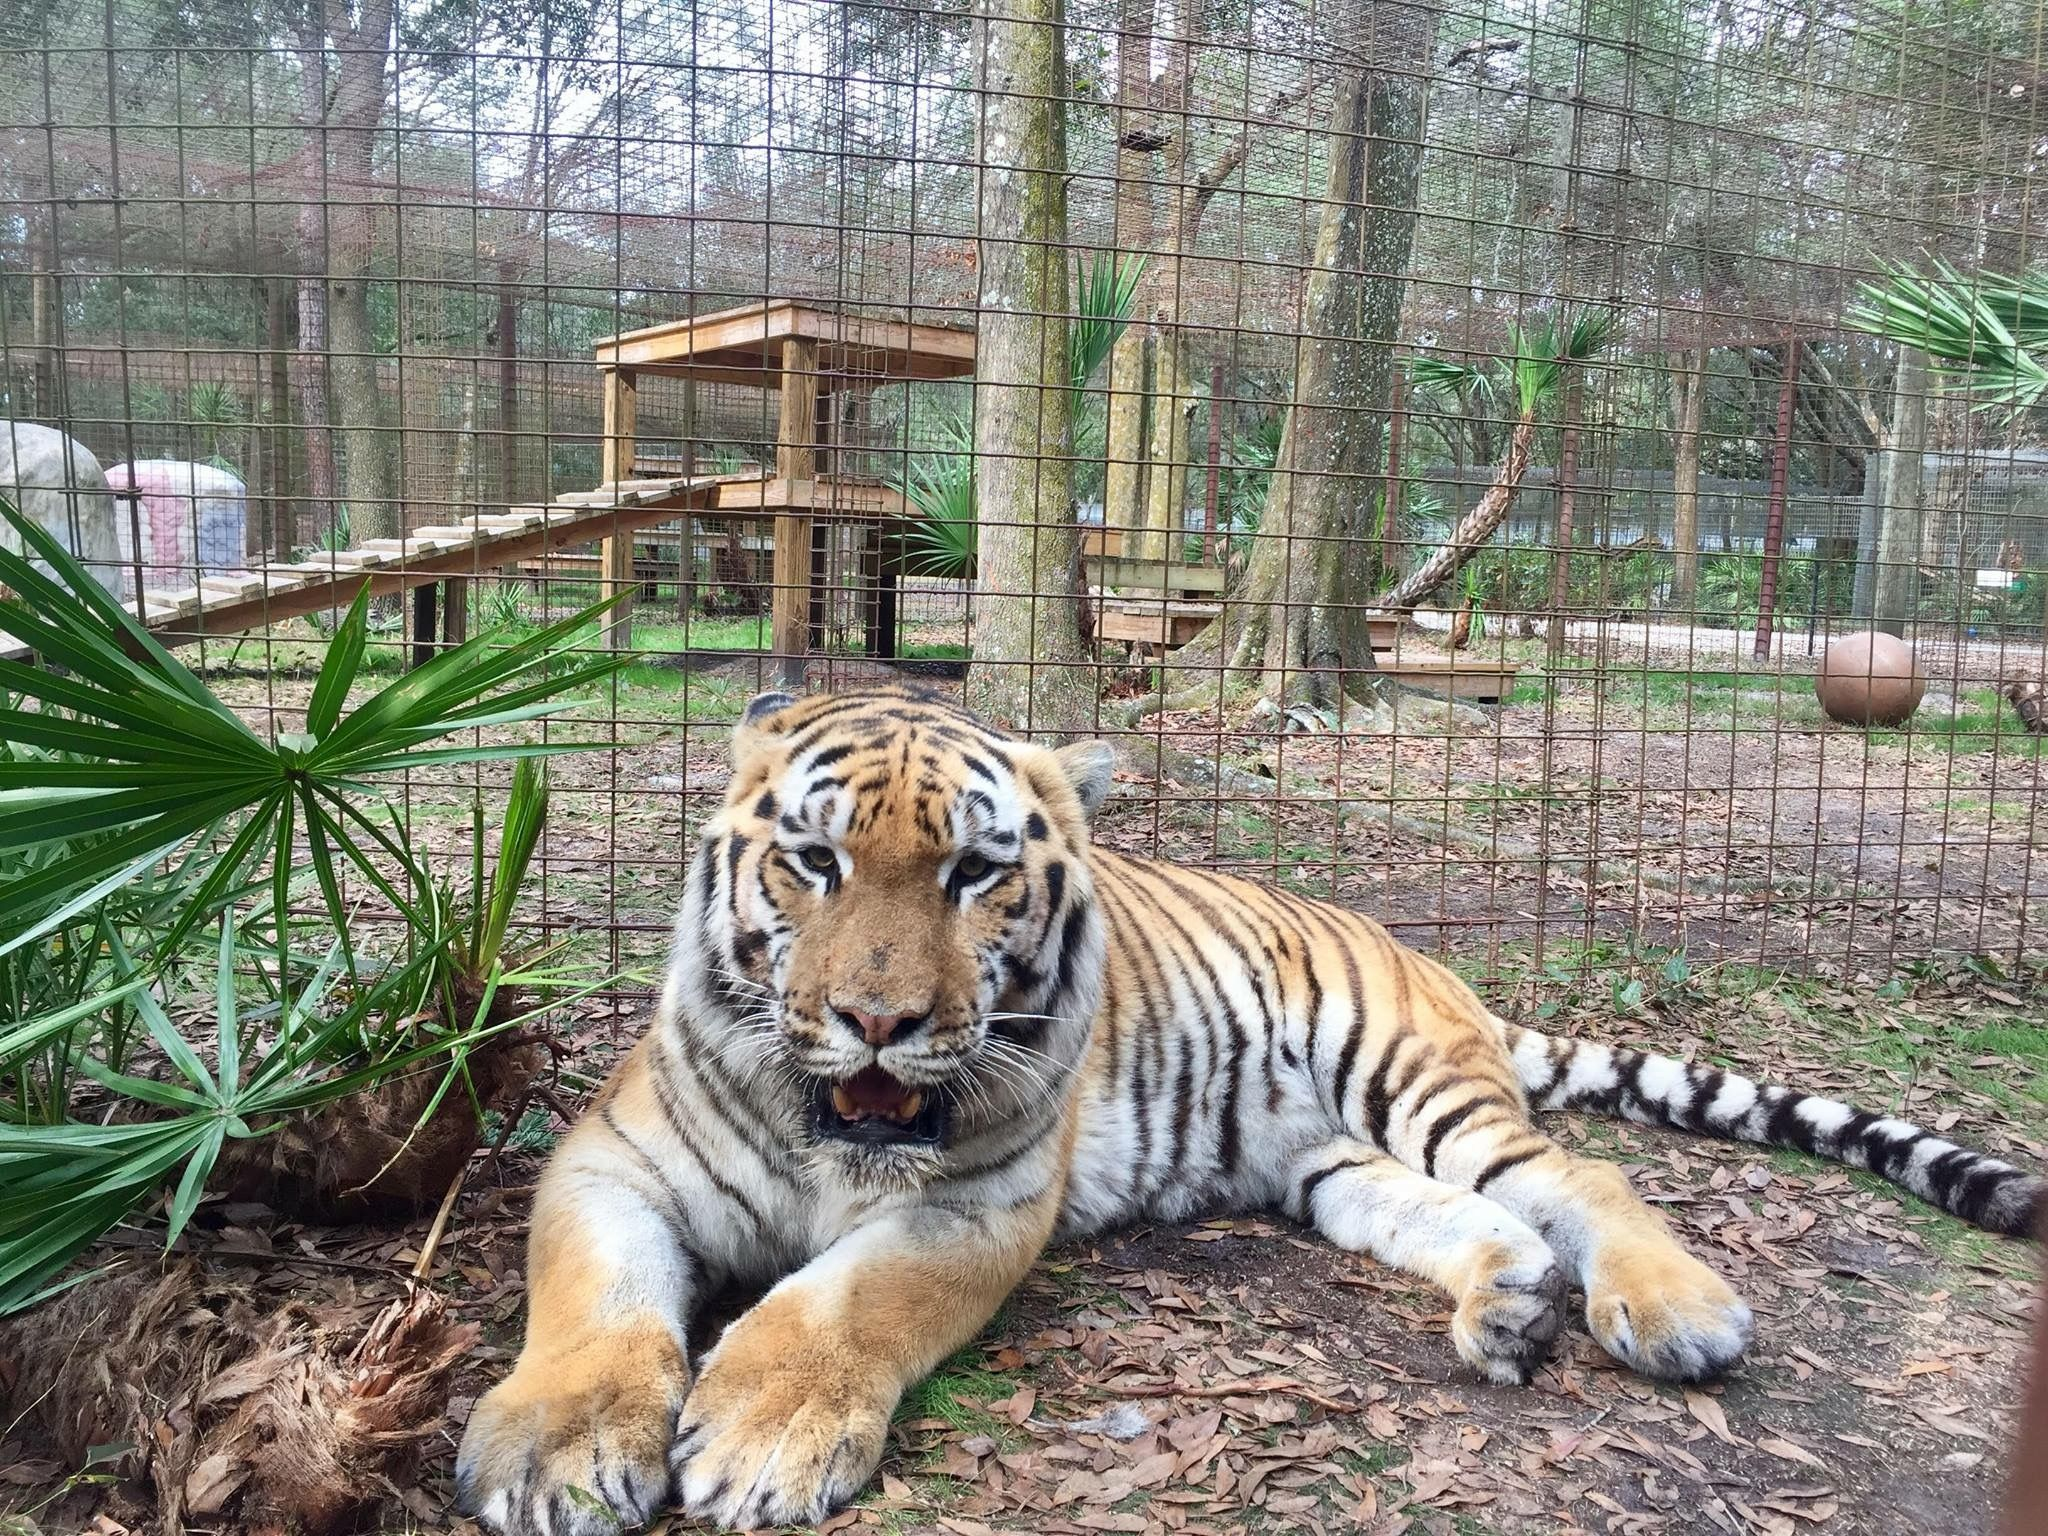 Pin by dusty moccasin on Big Cats Big cat rescue, Big